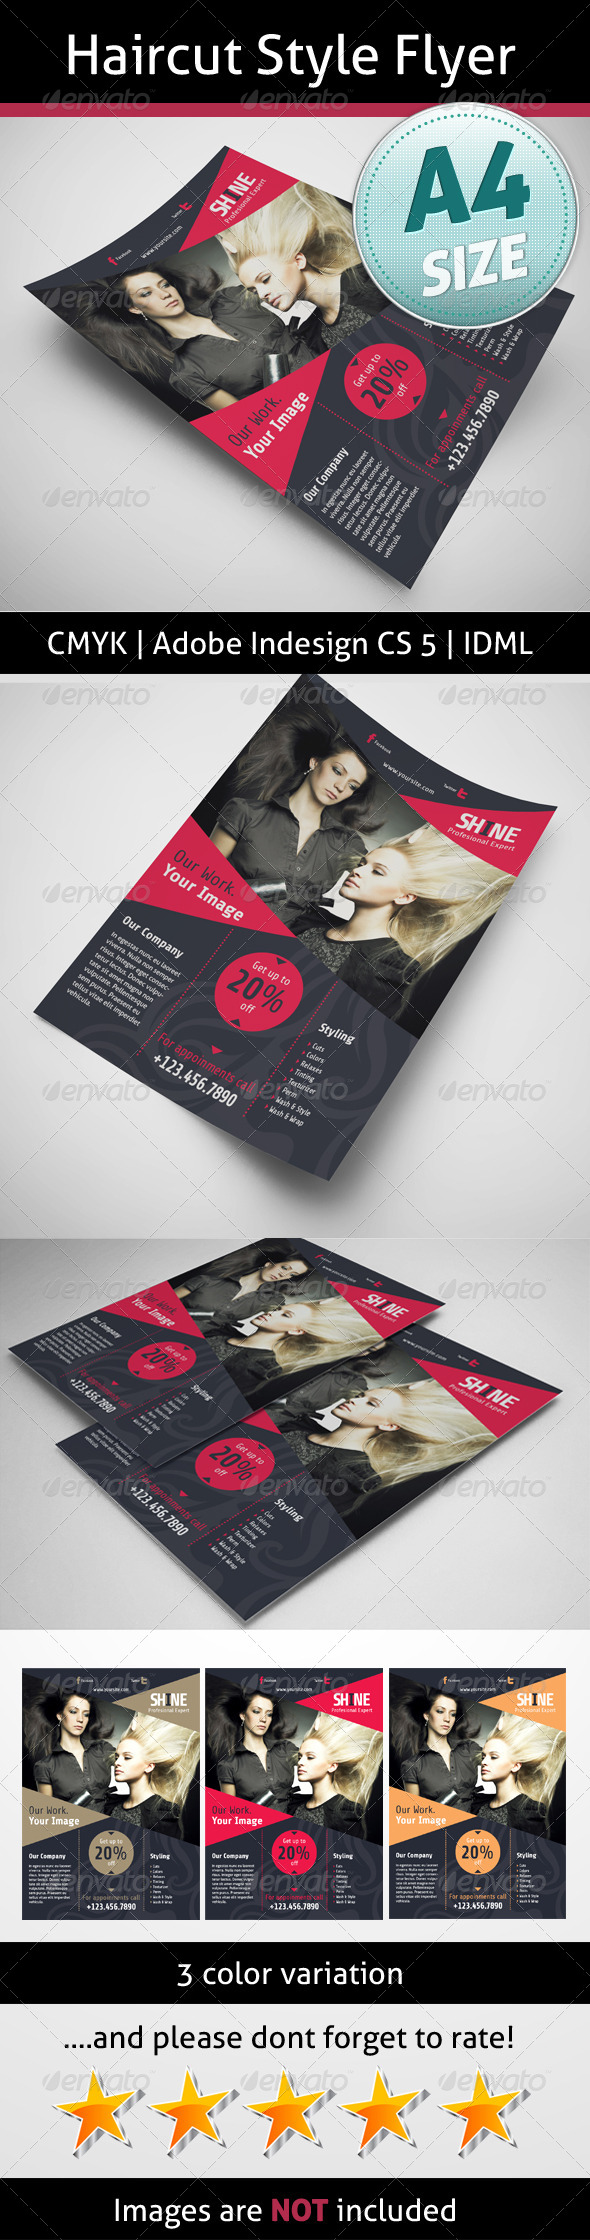 GraphicRiver Haircut Style Flyer 5159409